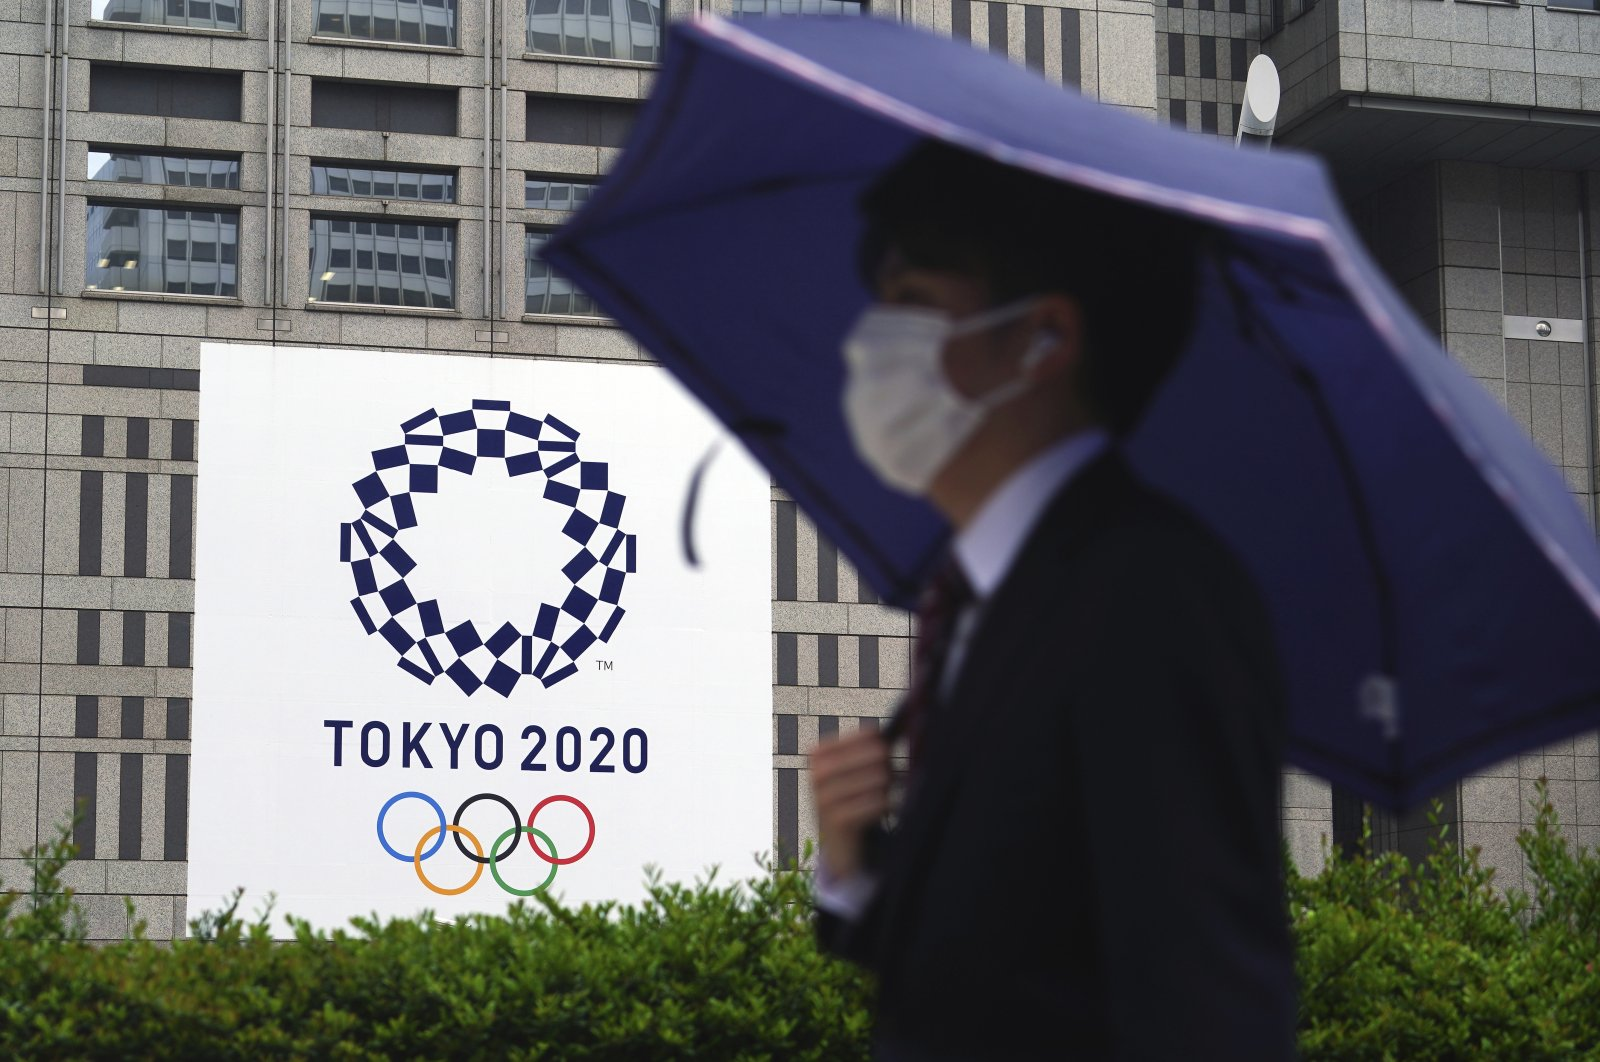 A man wearing a protective mask to help curb the spread of the coronavirus walks in the rain past a banner of the Tokyo 2020 Olympic Games, Tokyo, Japan, May 13, 2021. (AP Photo)